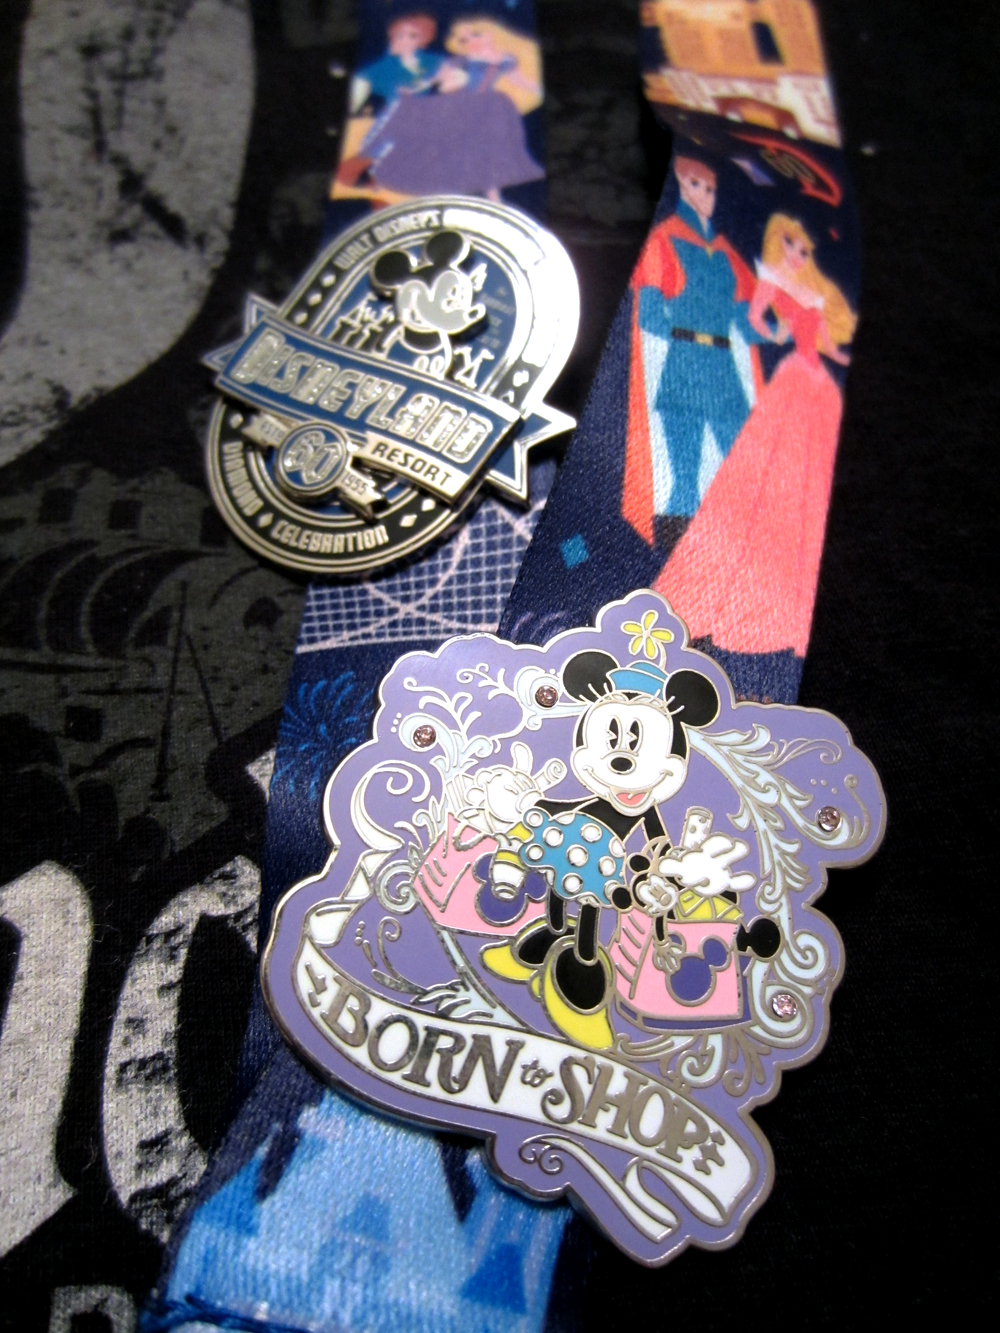 Of course I knew I couldn't leave without getting some new pins! And I really love the 60th Anniversary lanyard they designed. It has all of my favorite characters and attractions on it!